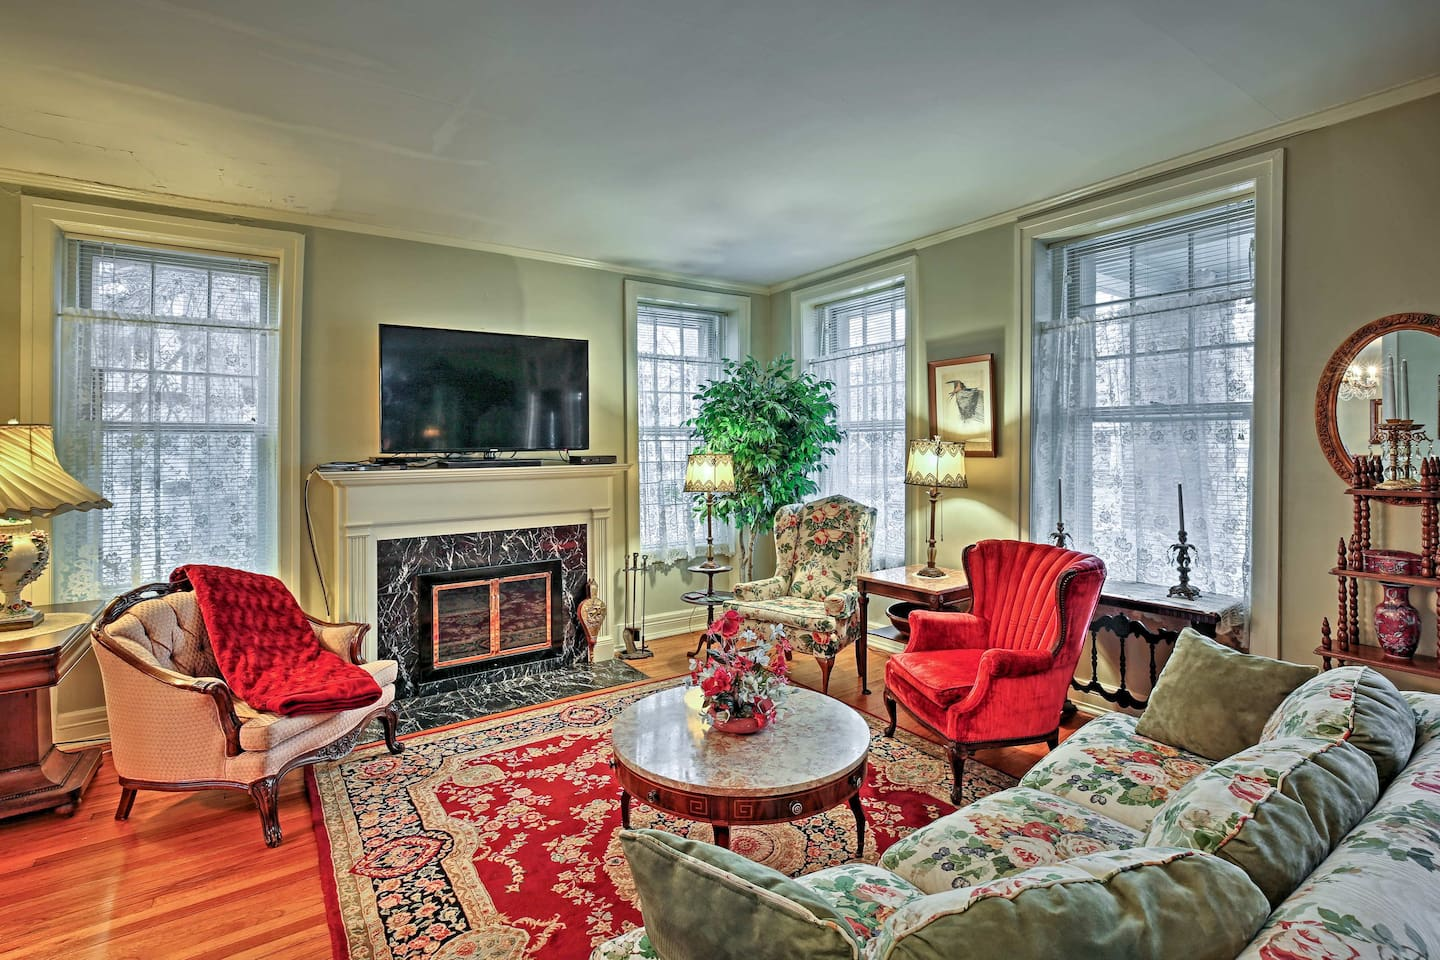 Book your Kansas City getaway to this stunning, historic home!